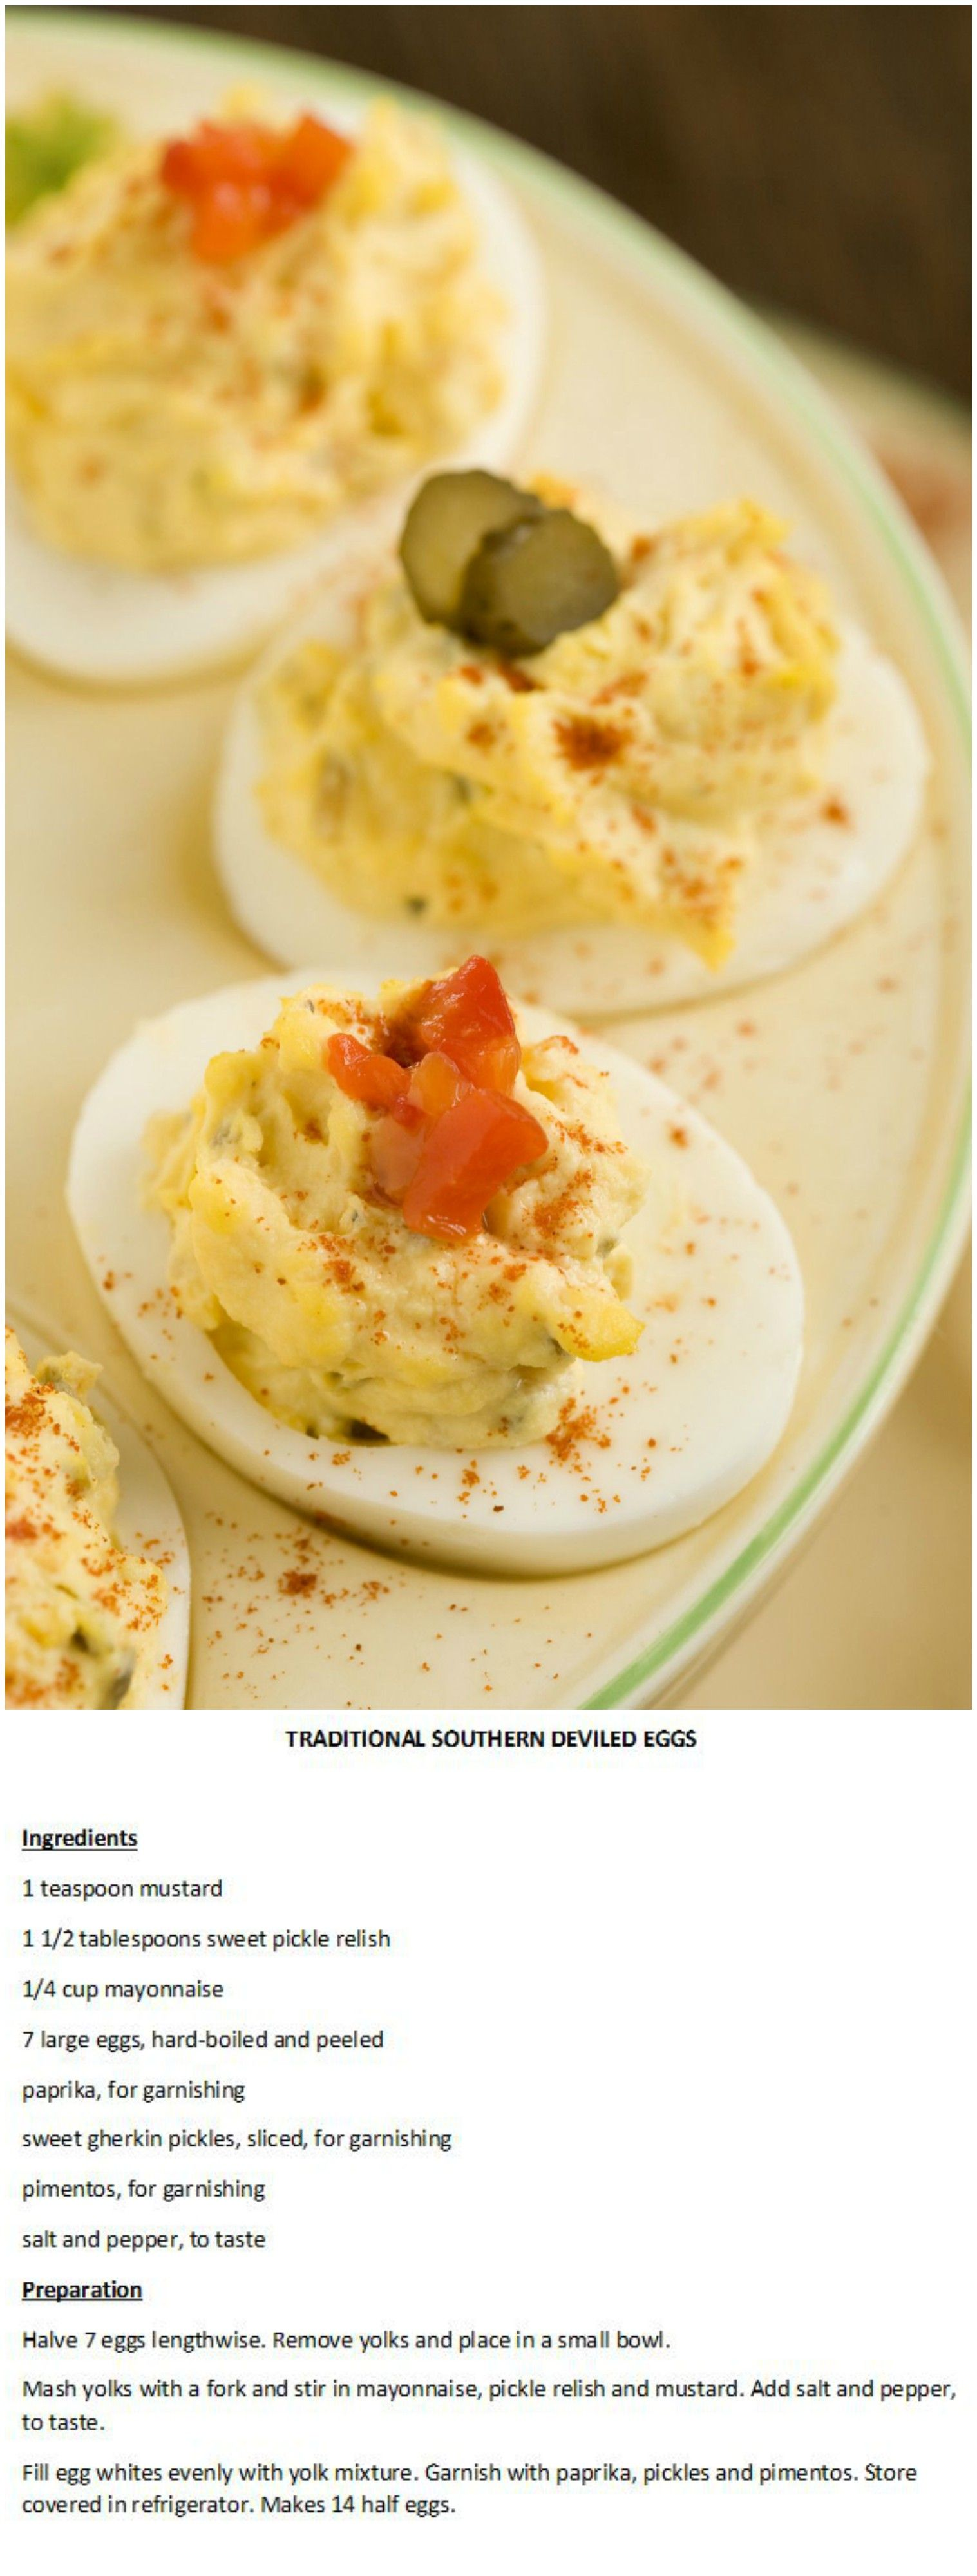 Paula Deen's Traditional Southern Deviled Eggs | Food ...